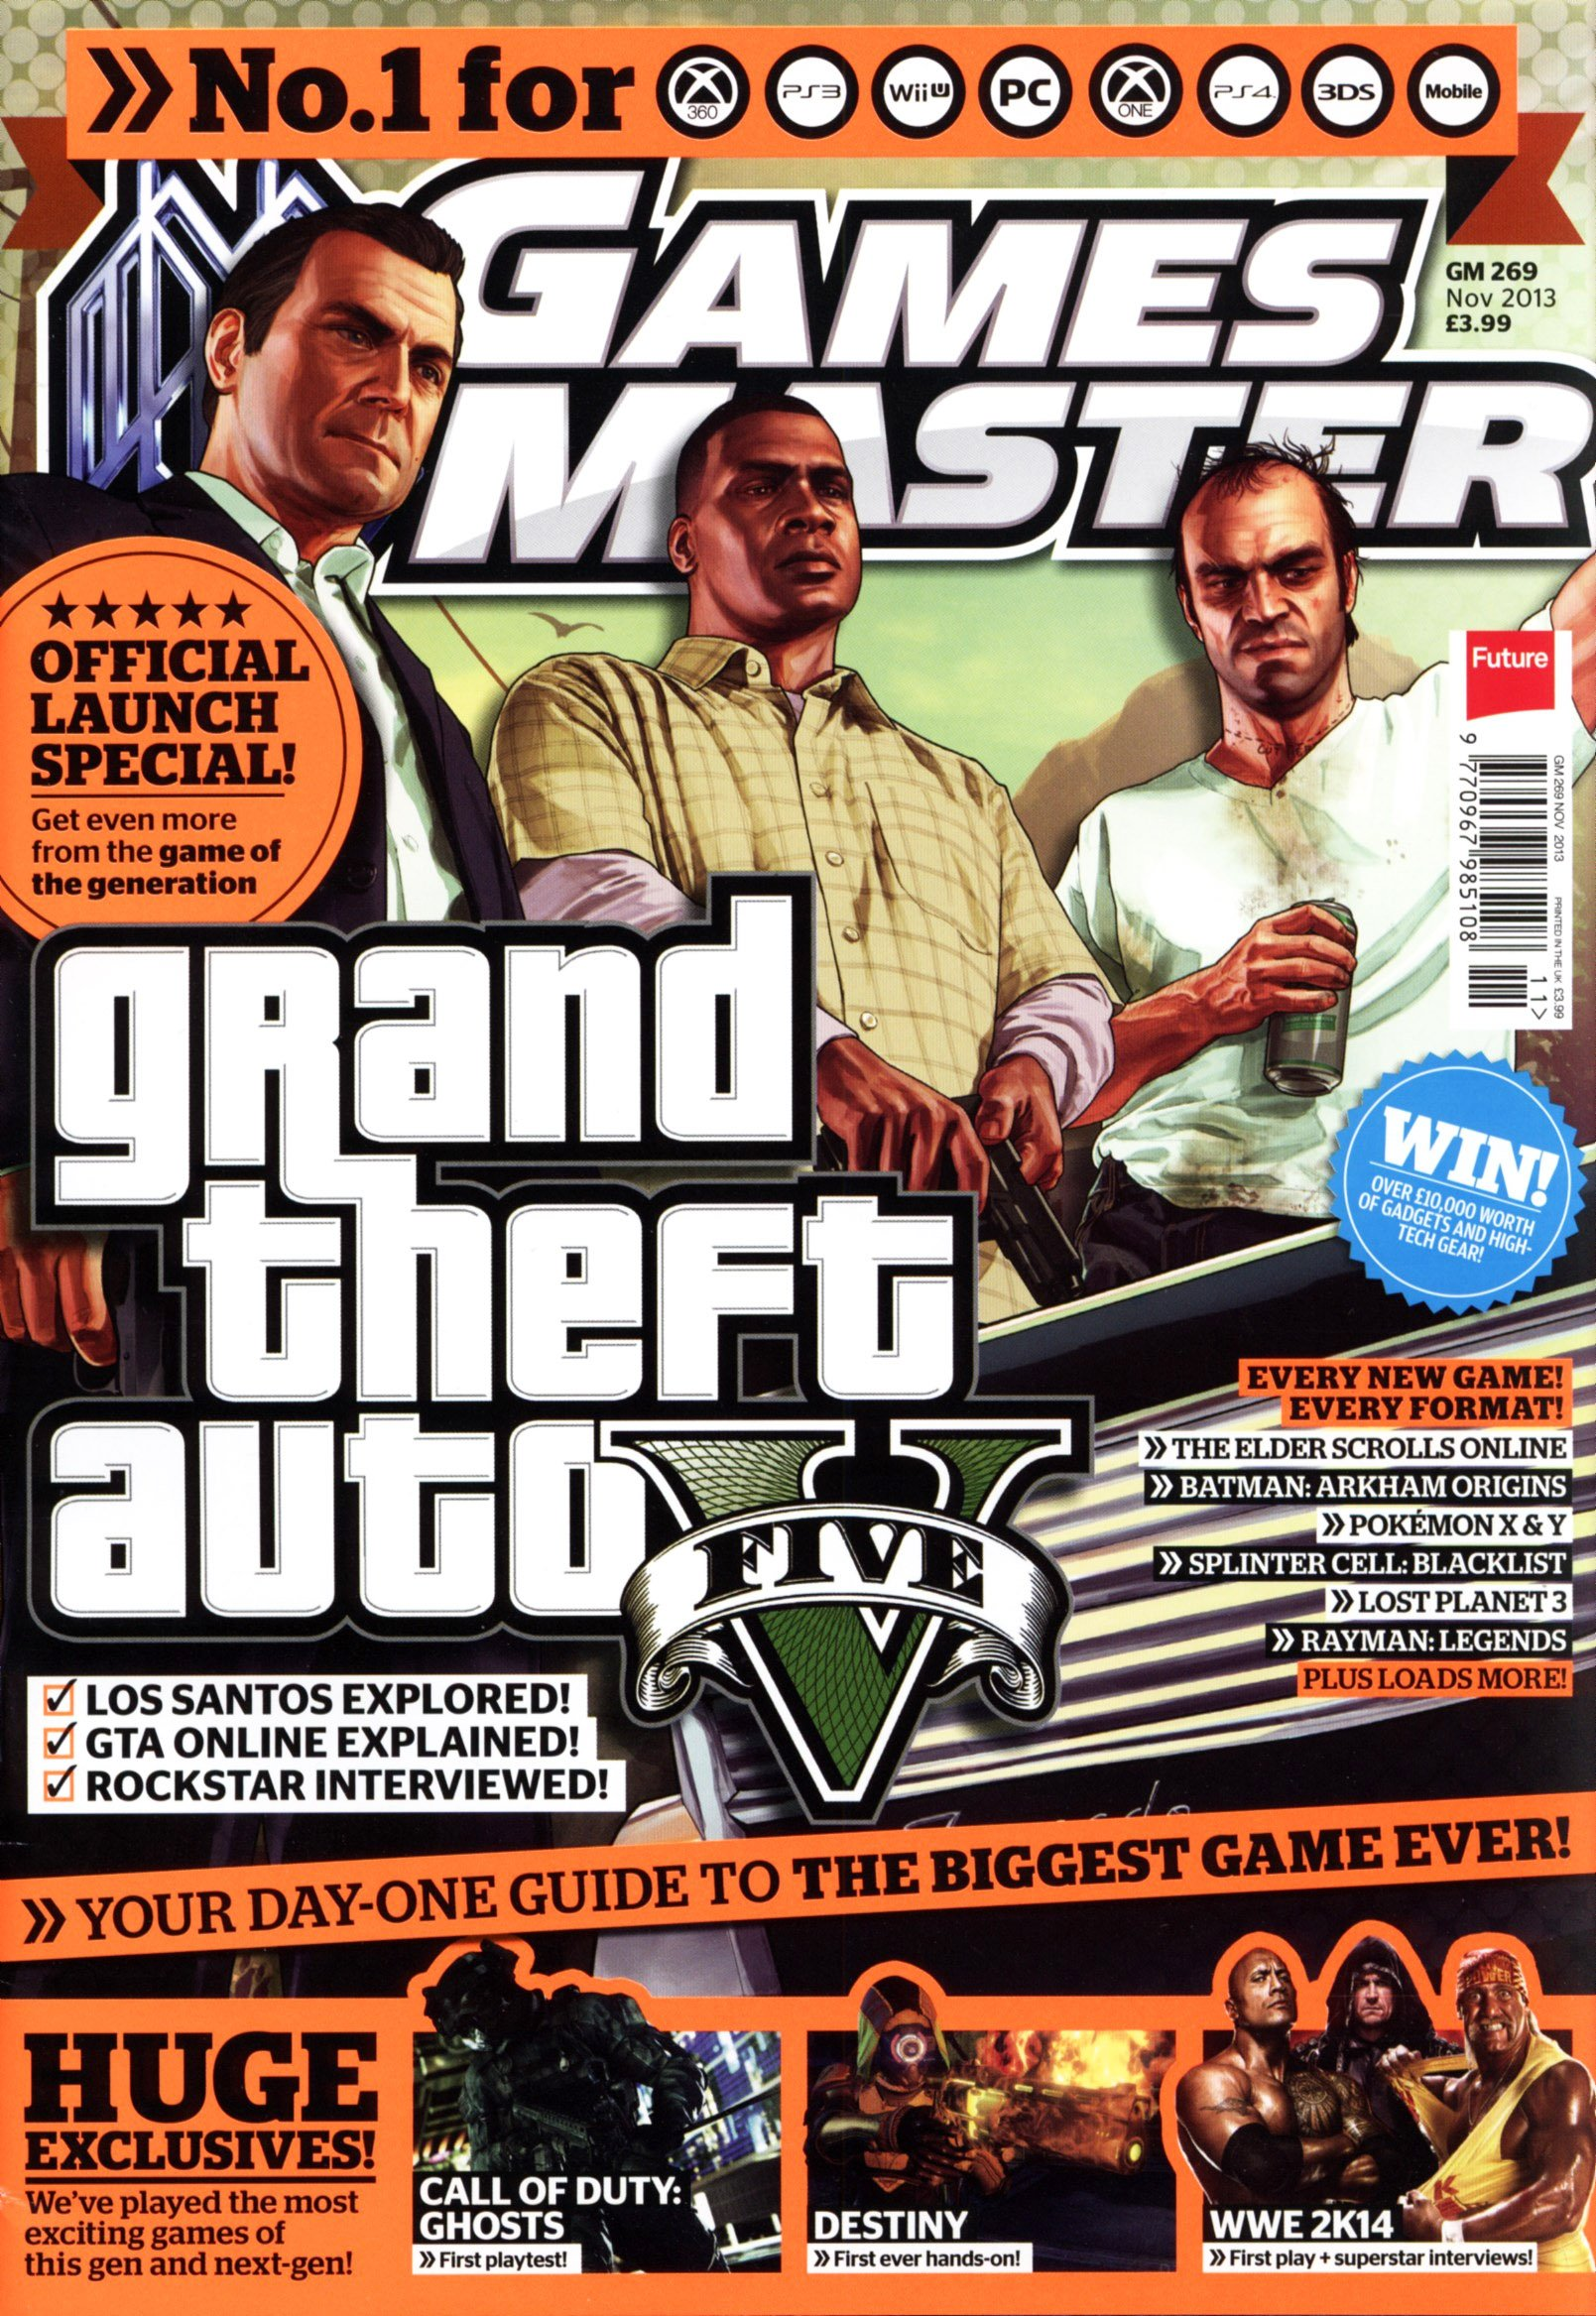 GamesMaster Issue 269 (November 2013) (print edition)